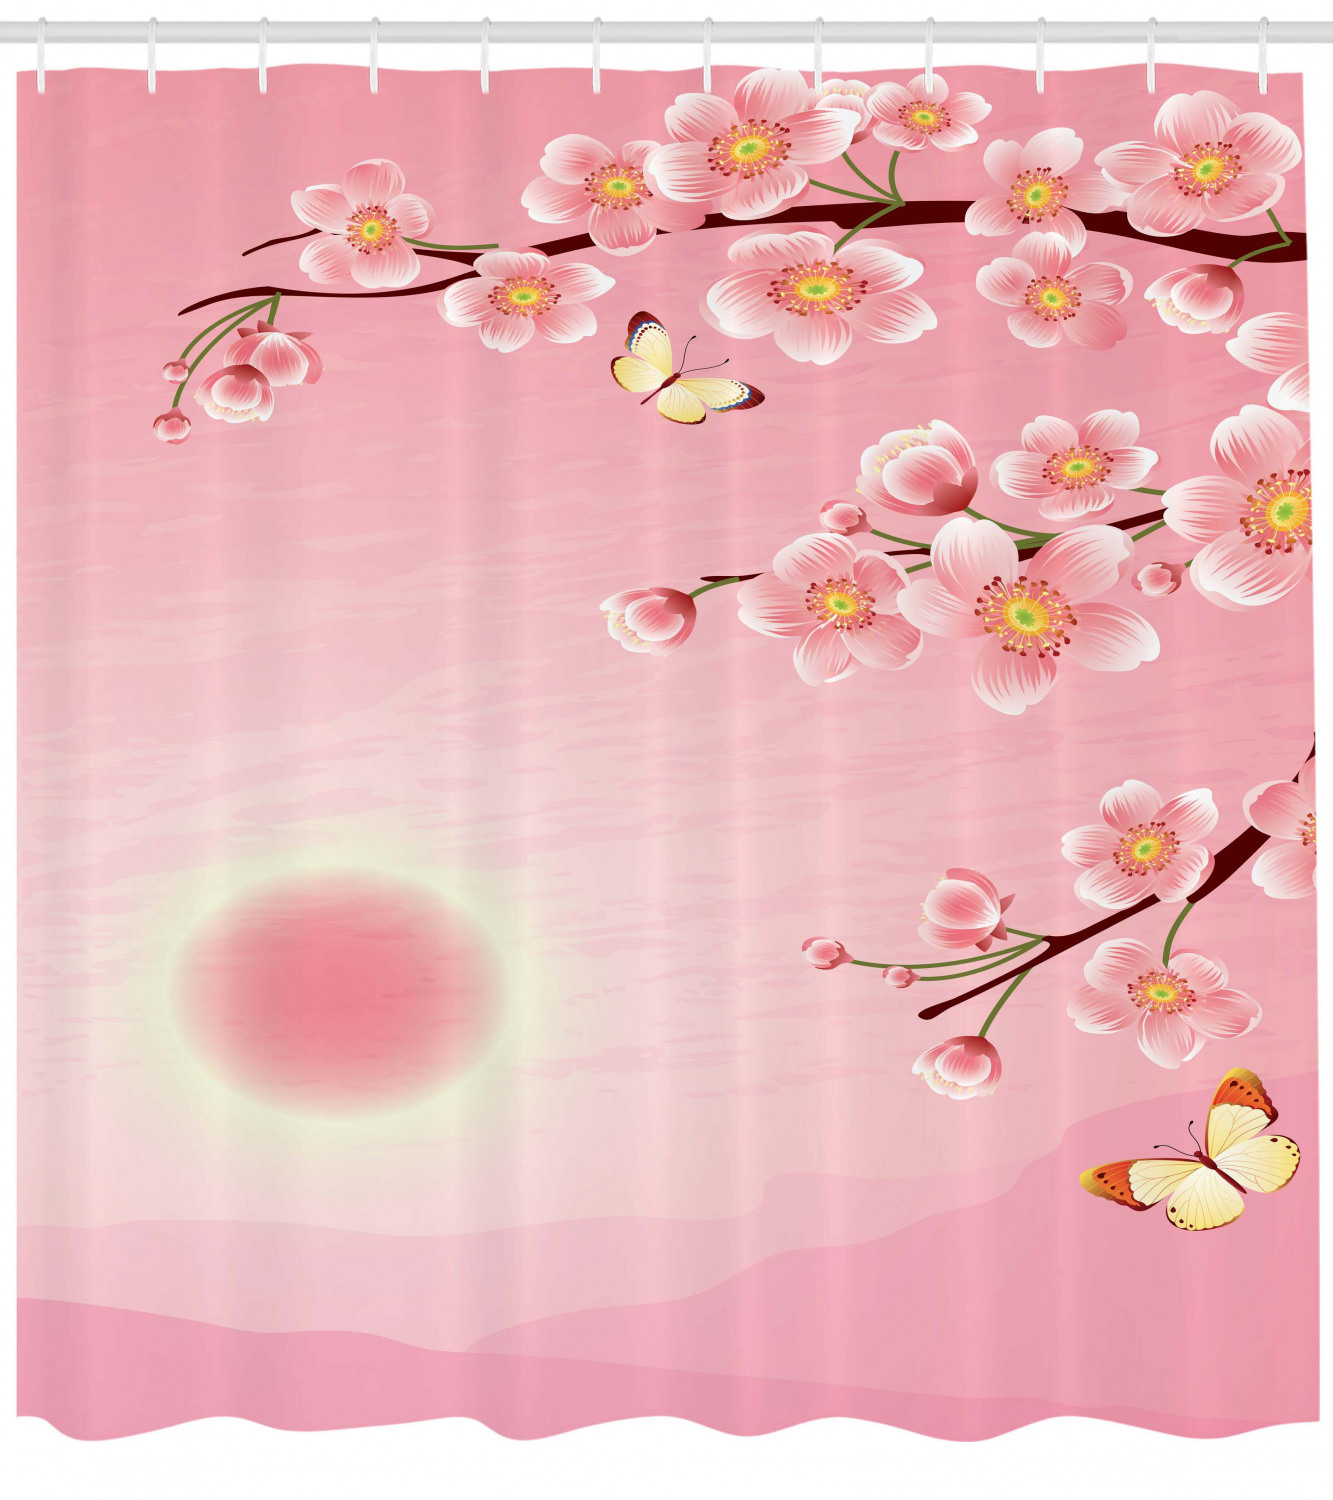 Asian Shower Curtain Cherry Blossom Tree With Sun Scenery On Backside Spring Days Butterfly Nature Print Fabric Bathroom Set With Hooks Pink